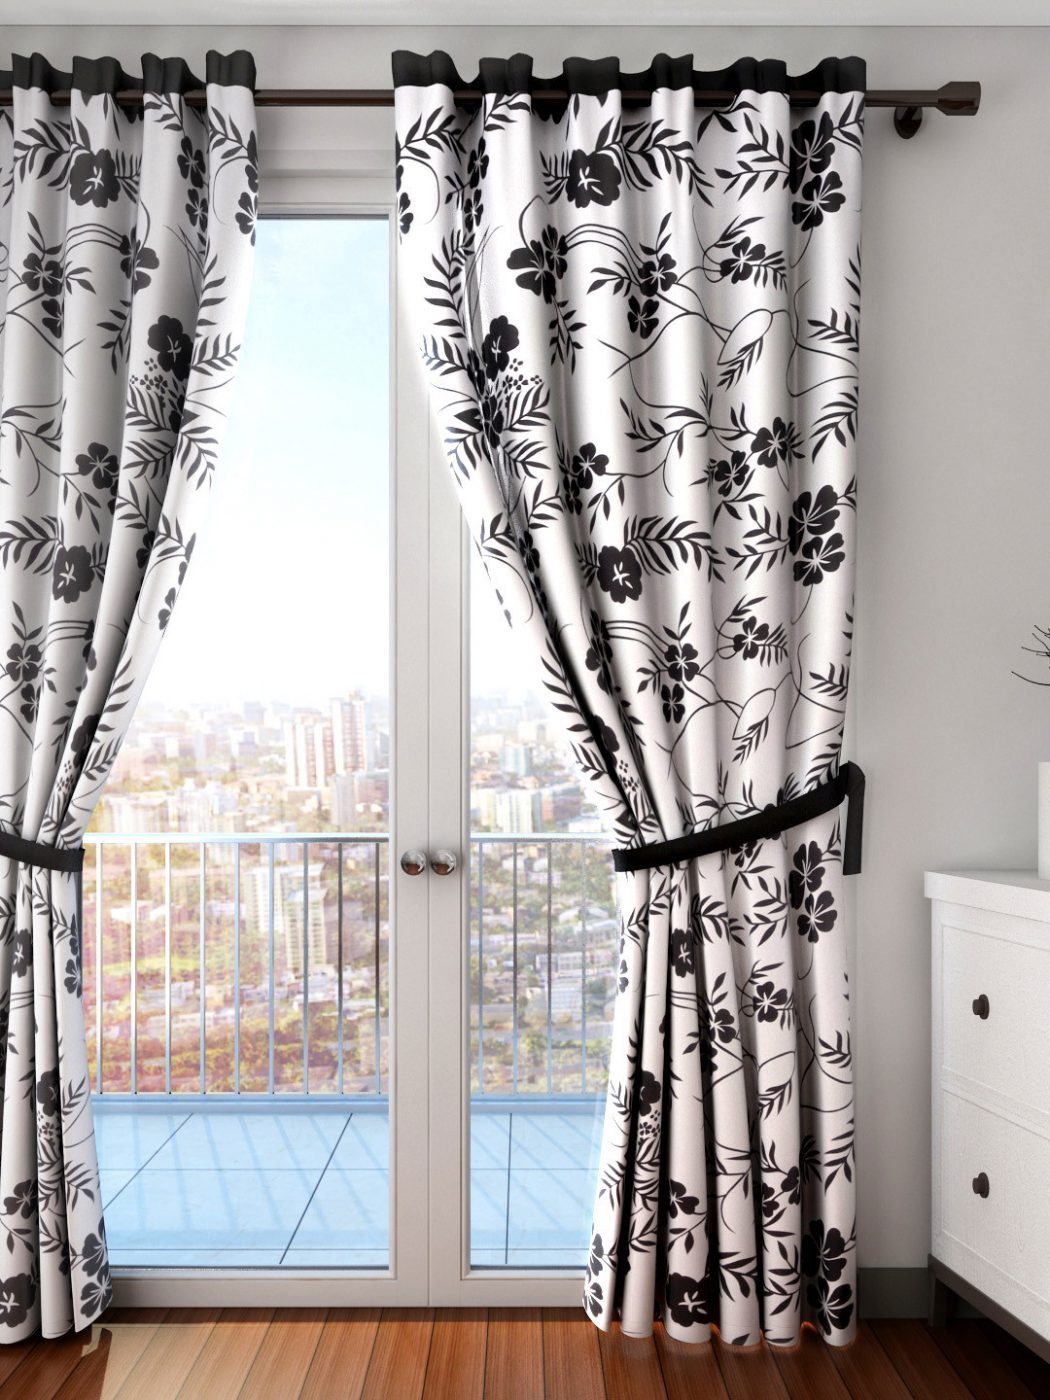 11465451719574-SWAYAM-White-Black-Single-Floral-Print-Long-Door-Curtain-7831465451719436-1 20+ Hottest Curtain Designs for 2018